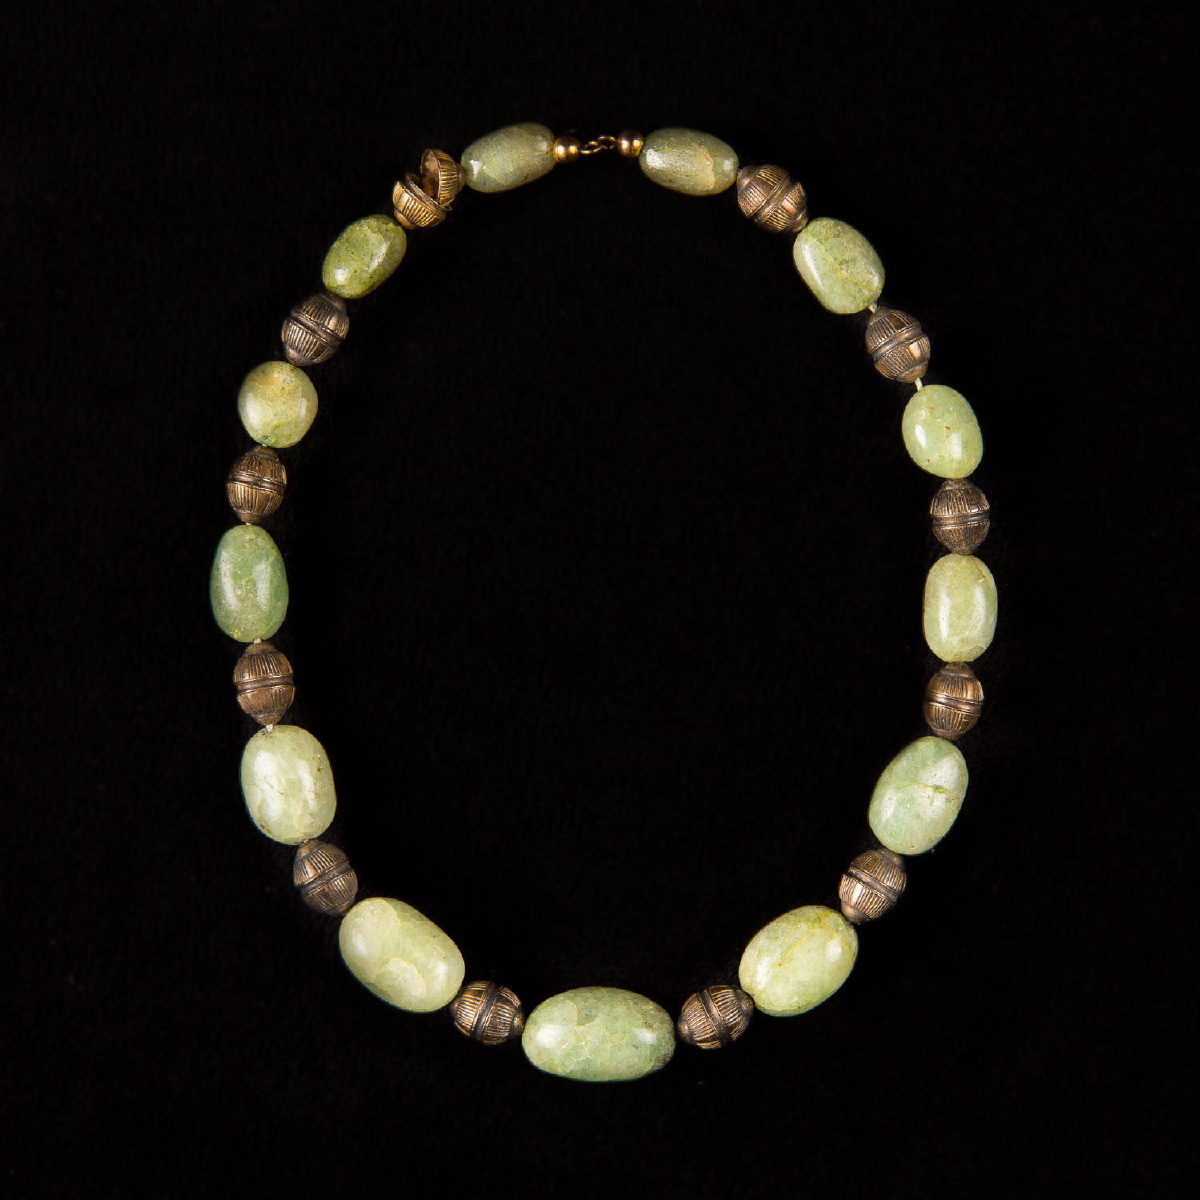 Photo of RARE OLIVINE RITUAL NECKLACE EXHIBITED AT THE METROPOLITAN MUSEUM